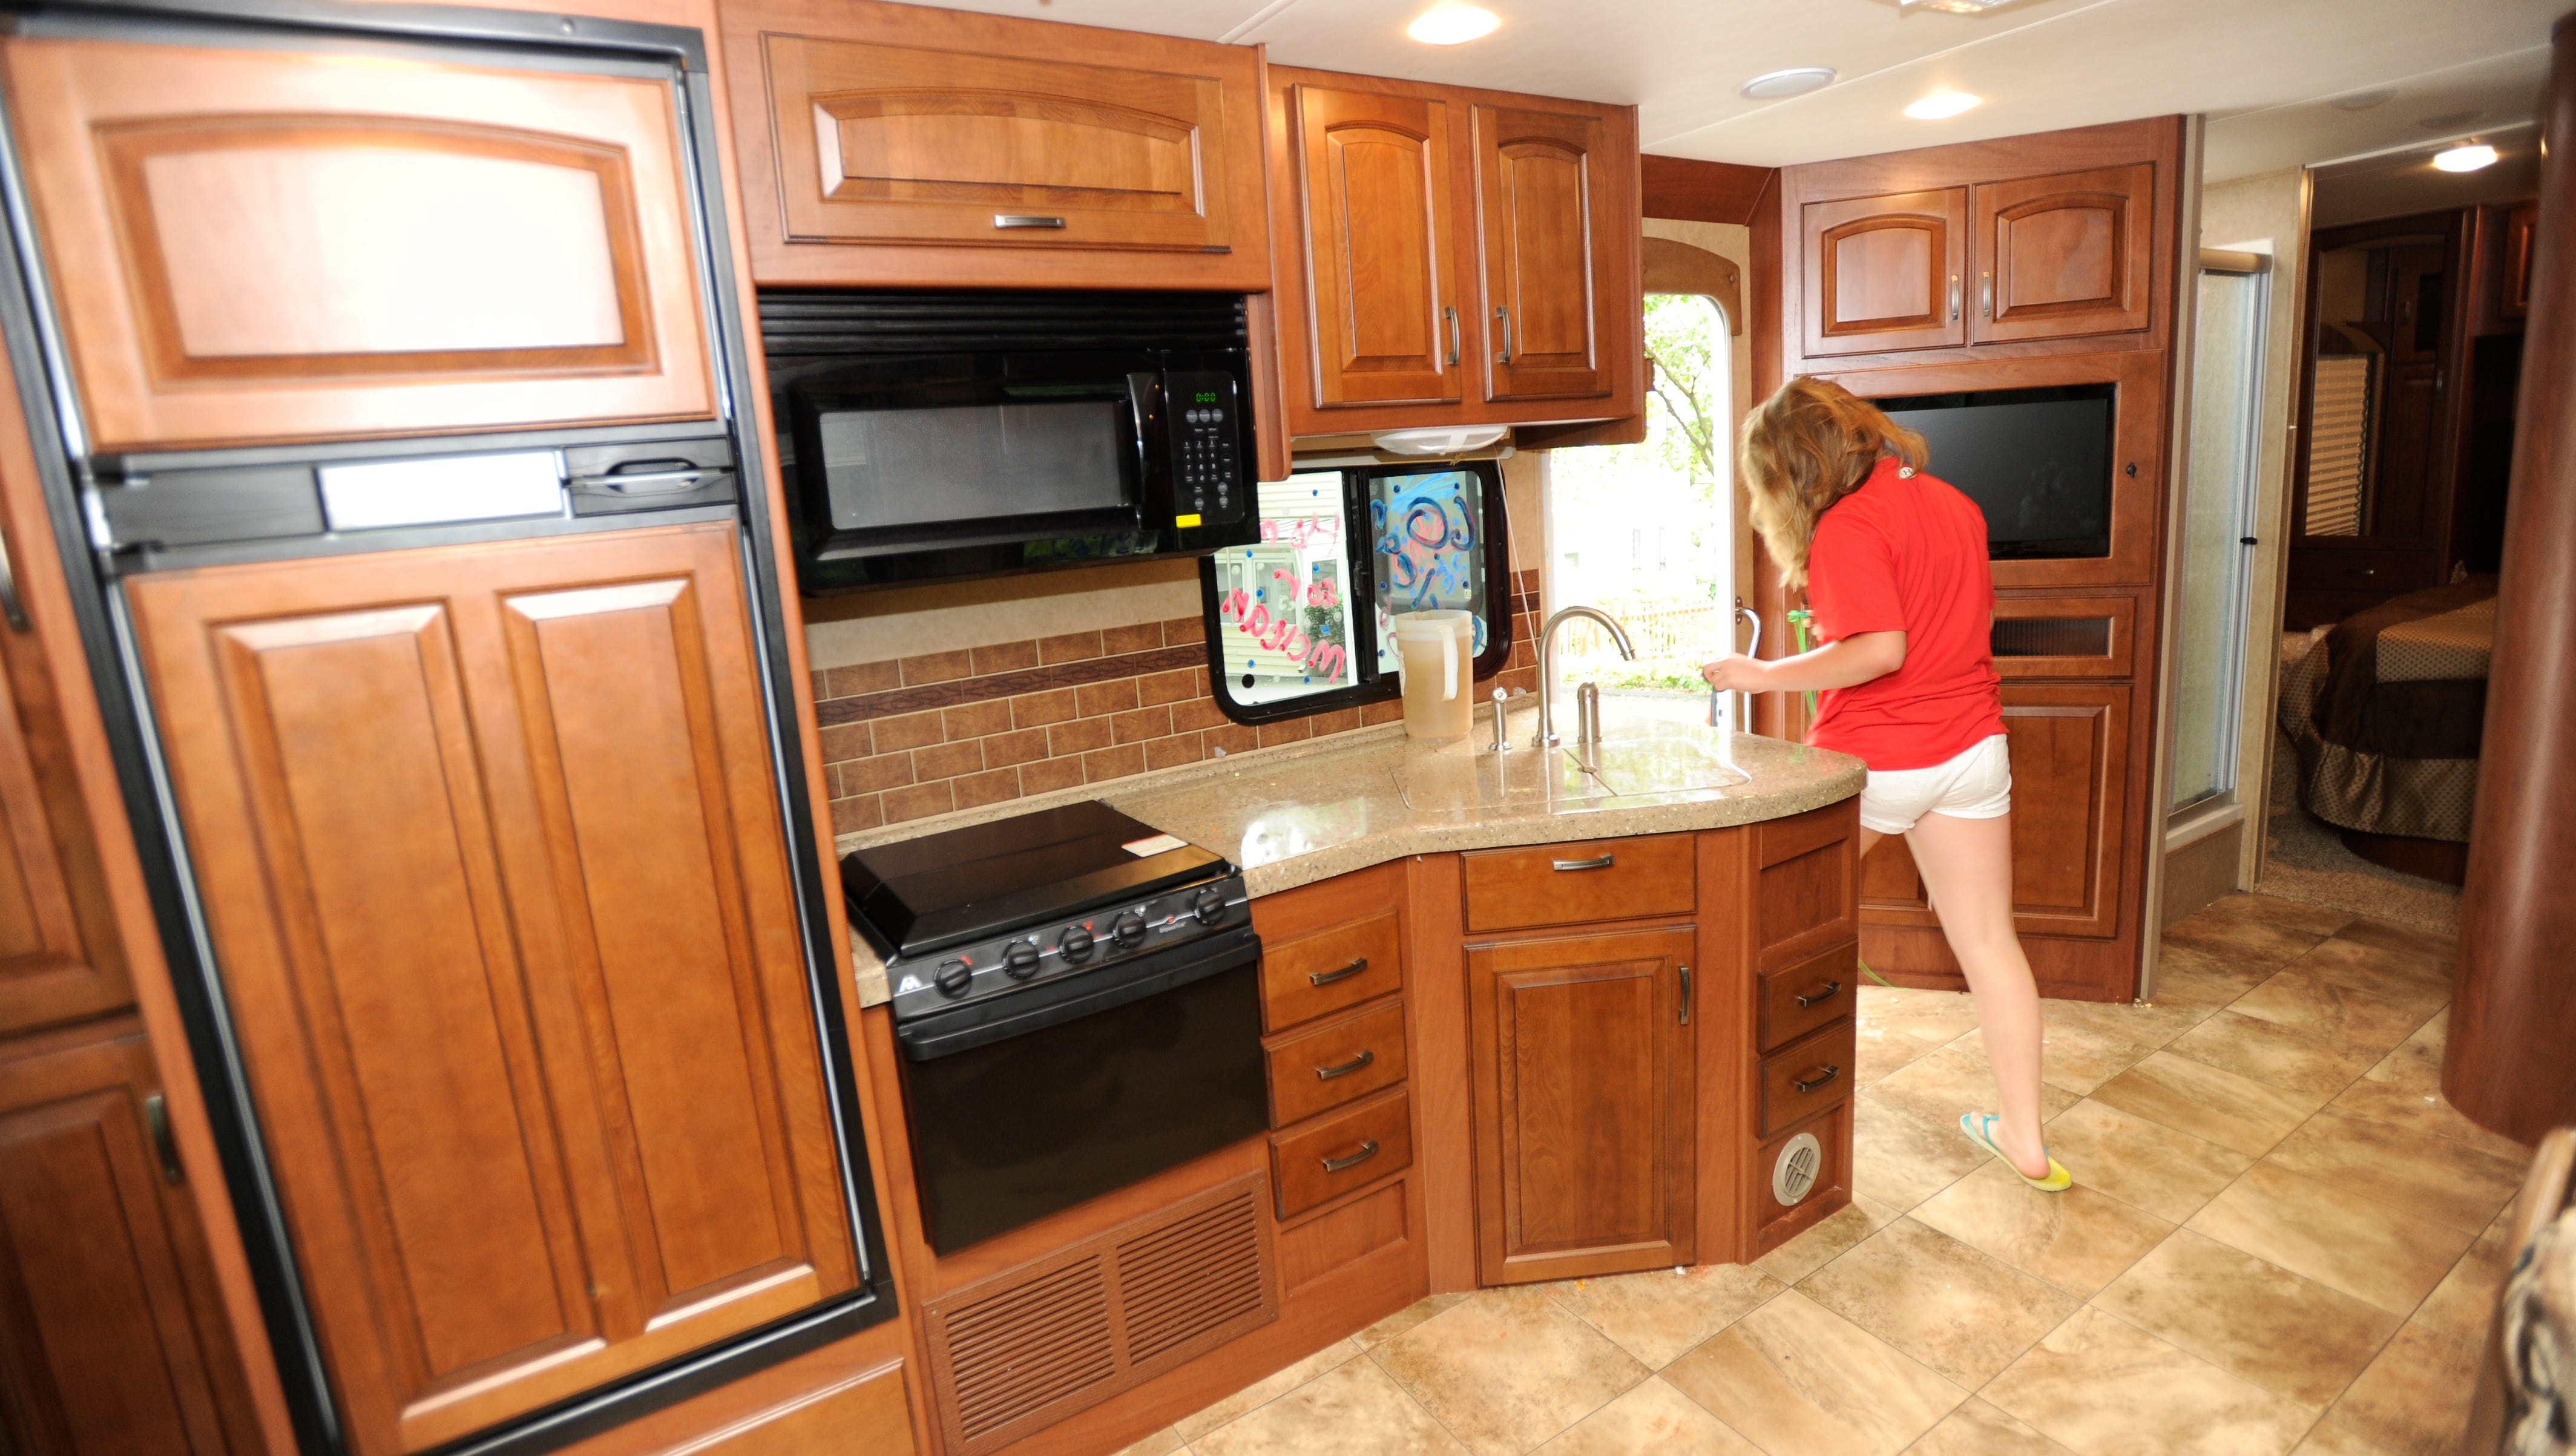 The RV has many of the kitchen amenities of home, including refrigerator, stove, cooktop, microwave and sink that can be covered to provide more counter space.